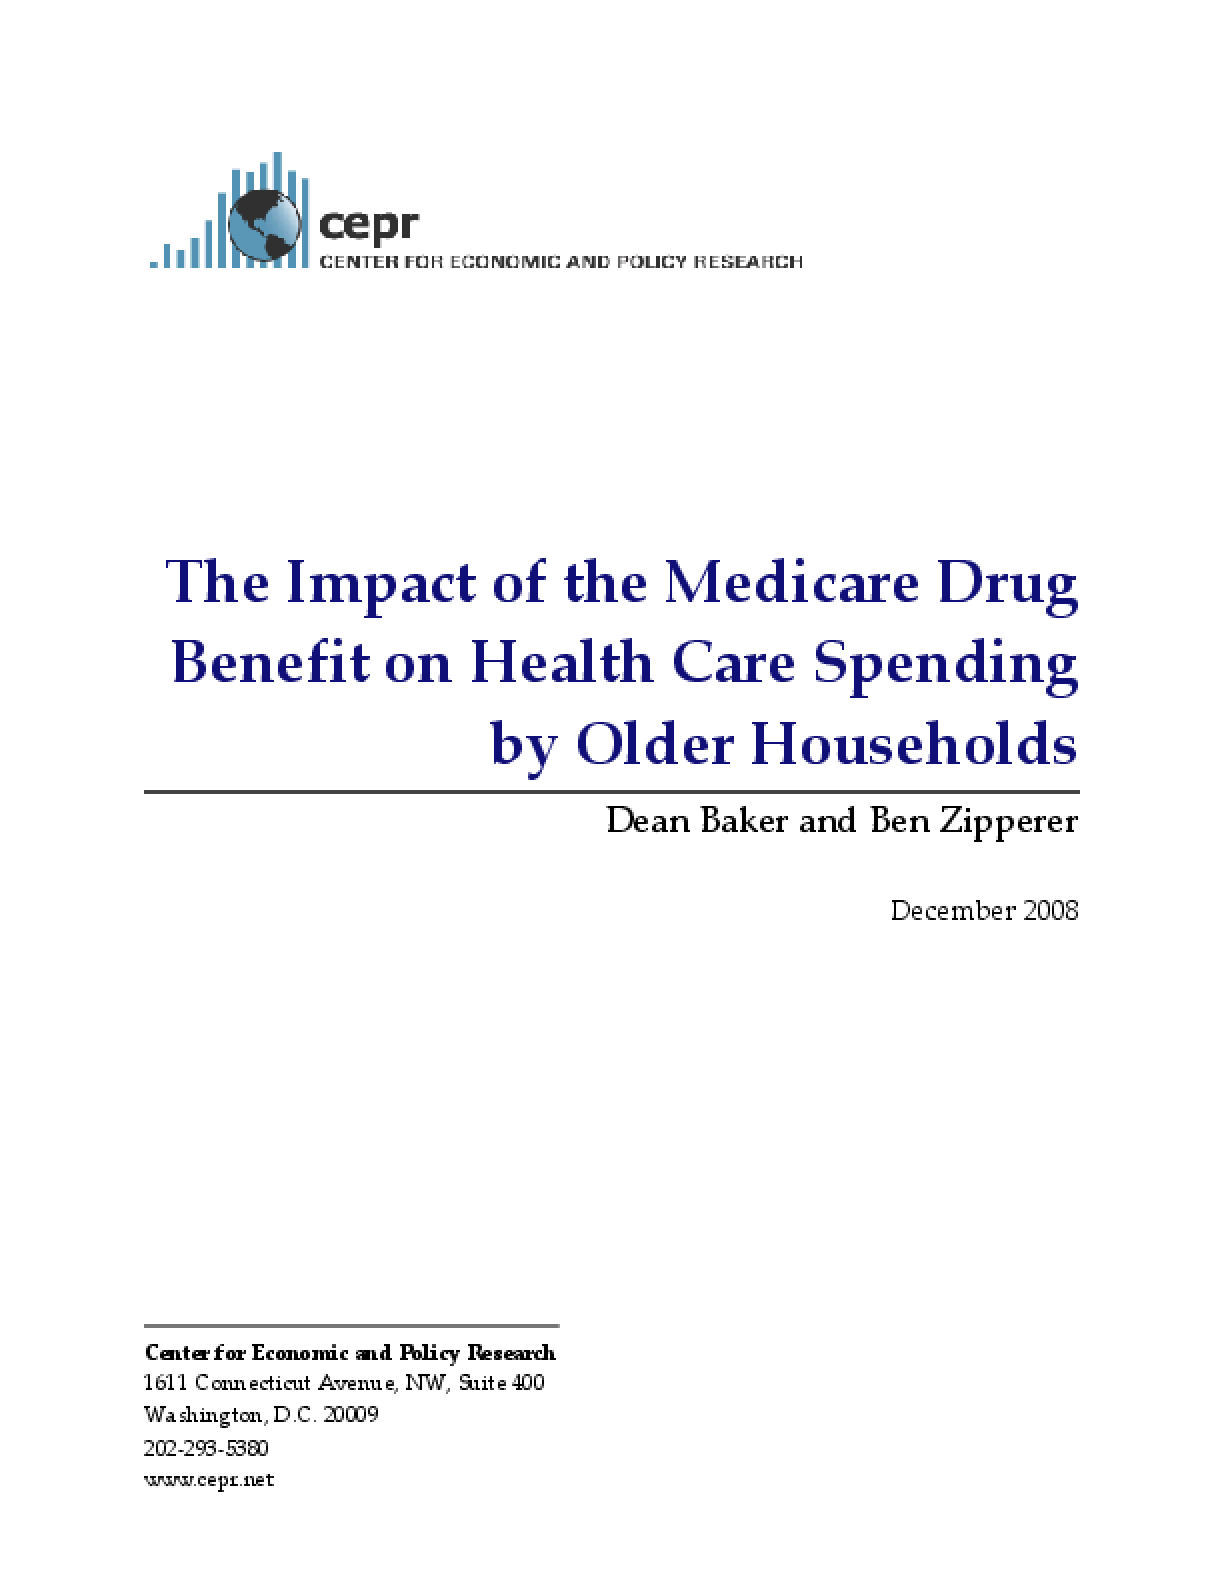 The Impact of the Medicare Drug Benefit on Health Care Spending by Older Households